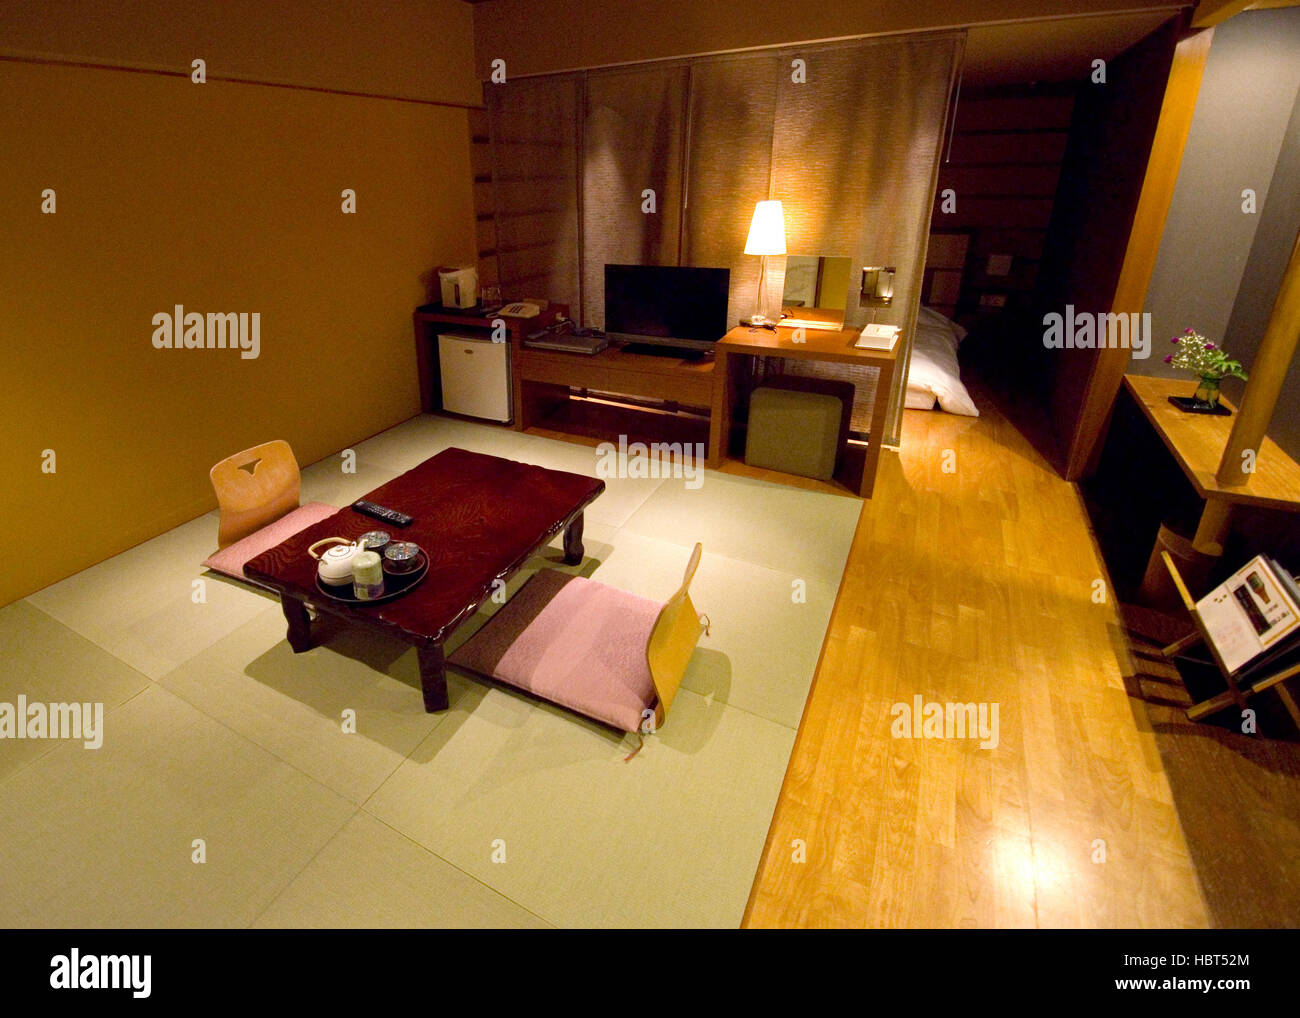 Traditional Japanese style hotel room with tatami mats and futon